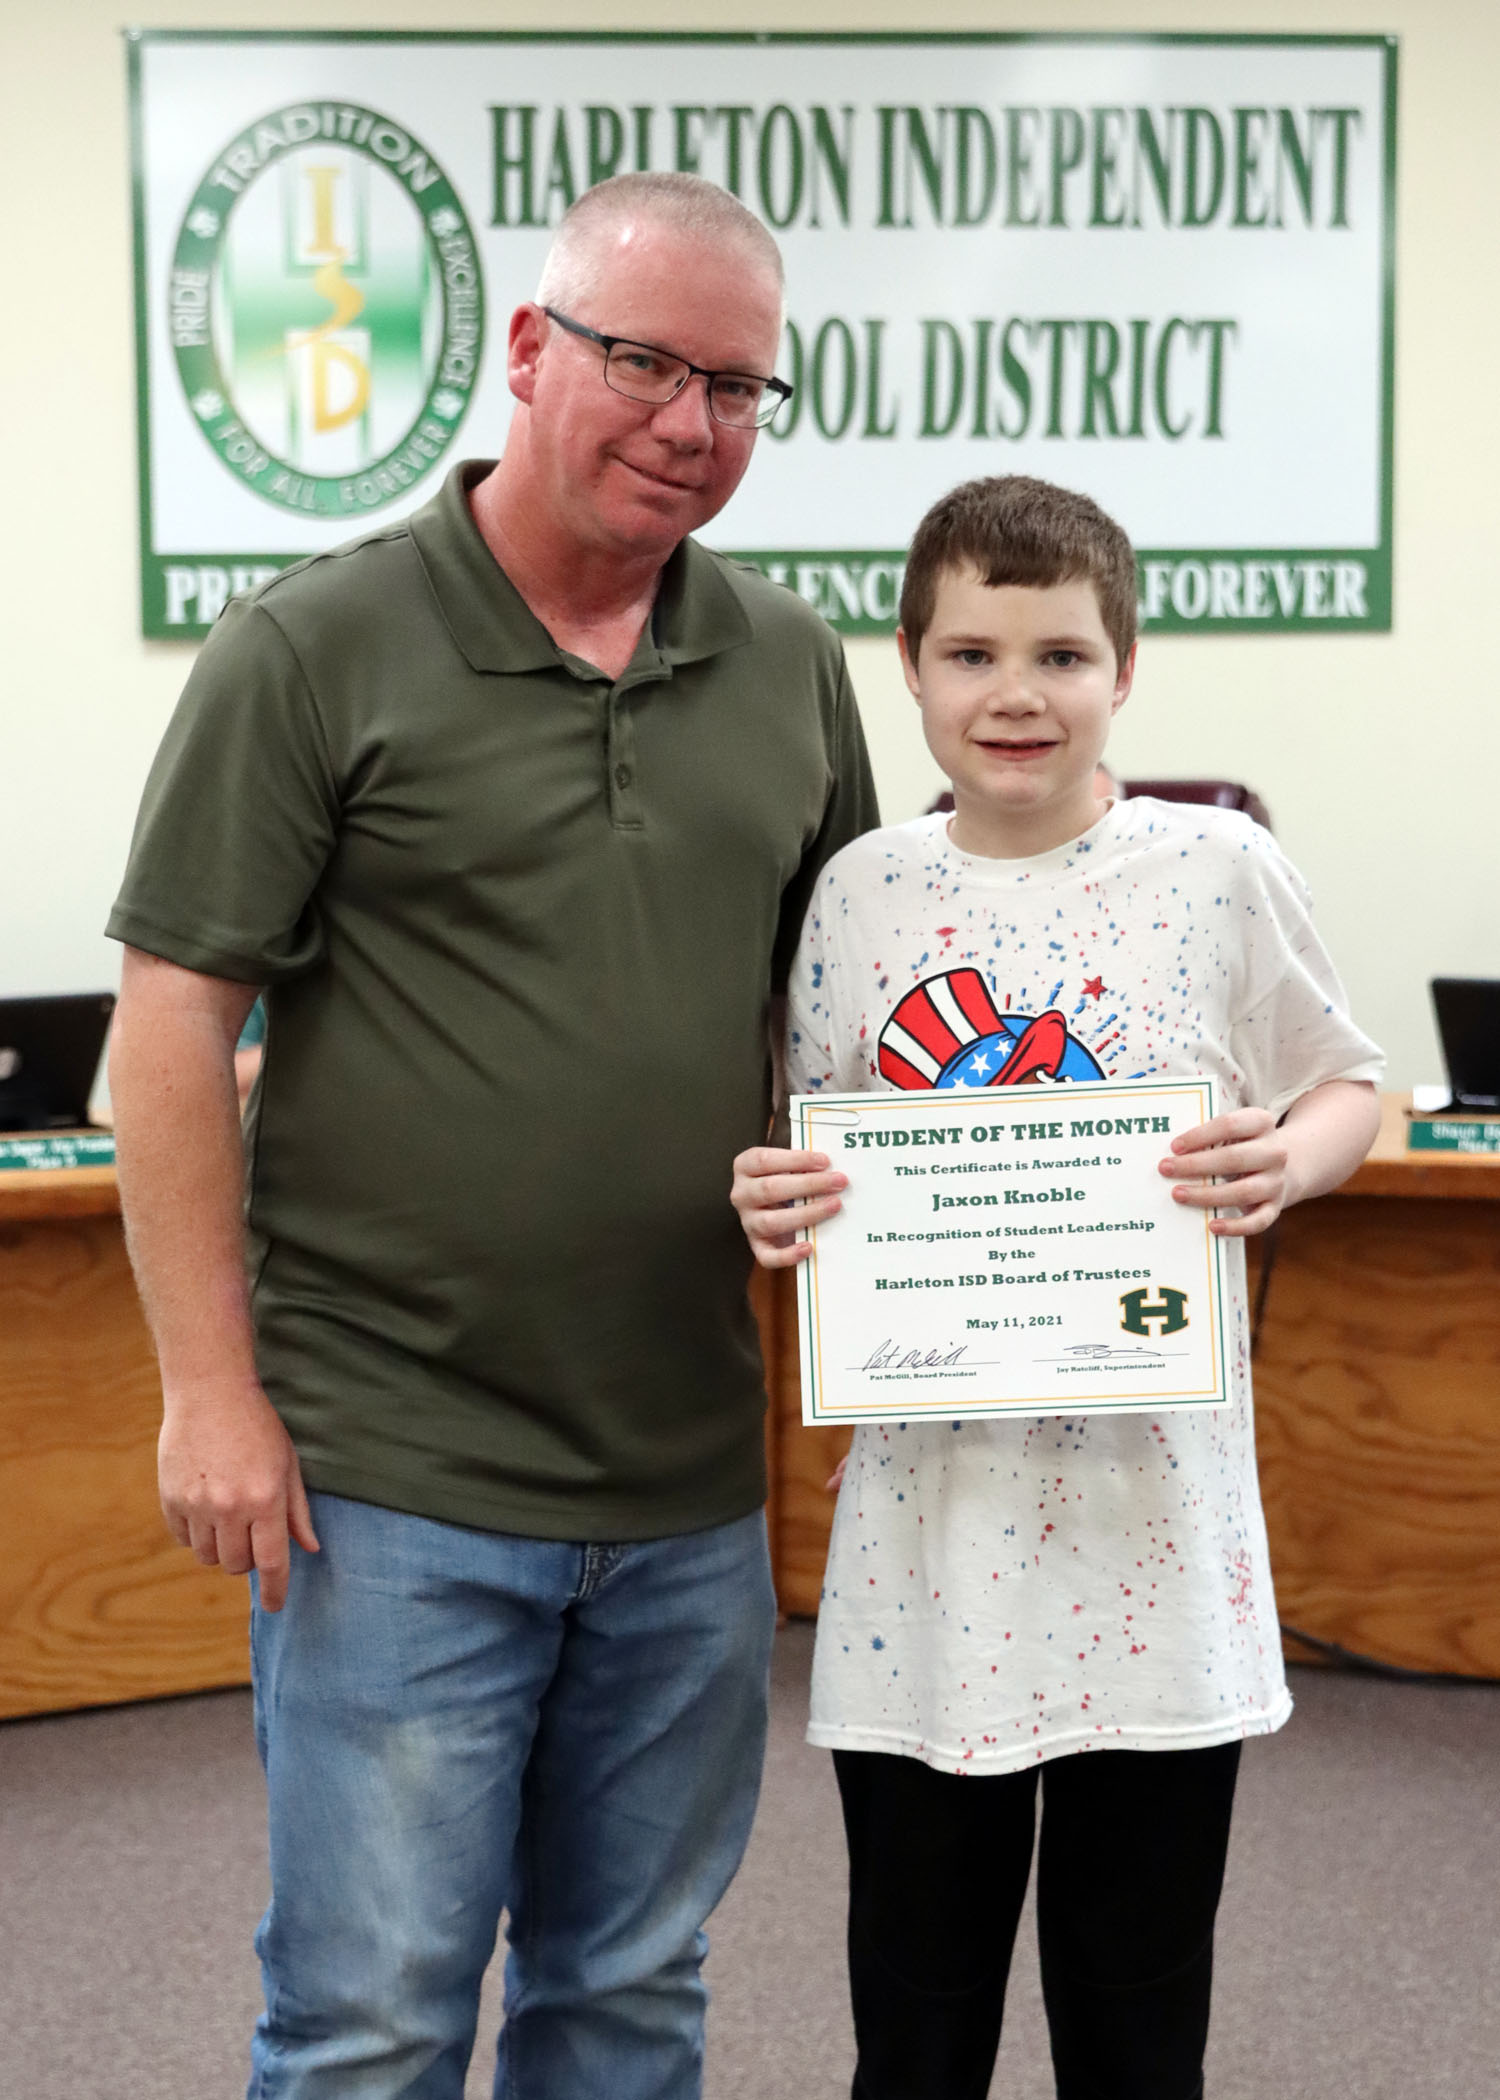 May Student of the Month Jaxon Knoble!